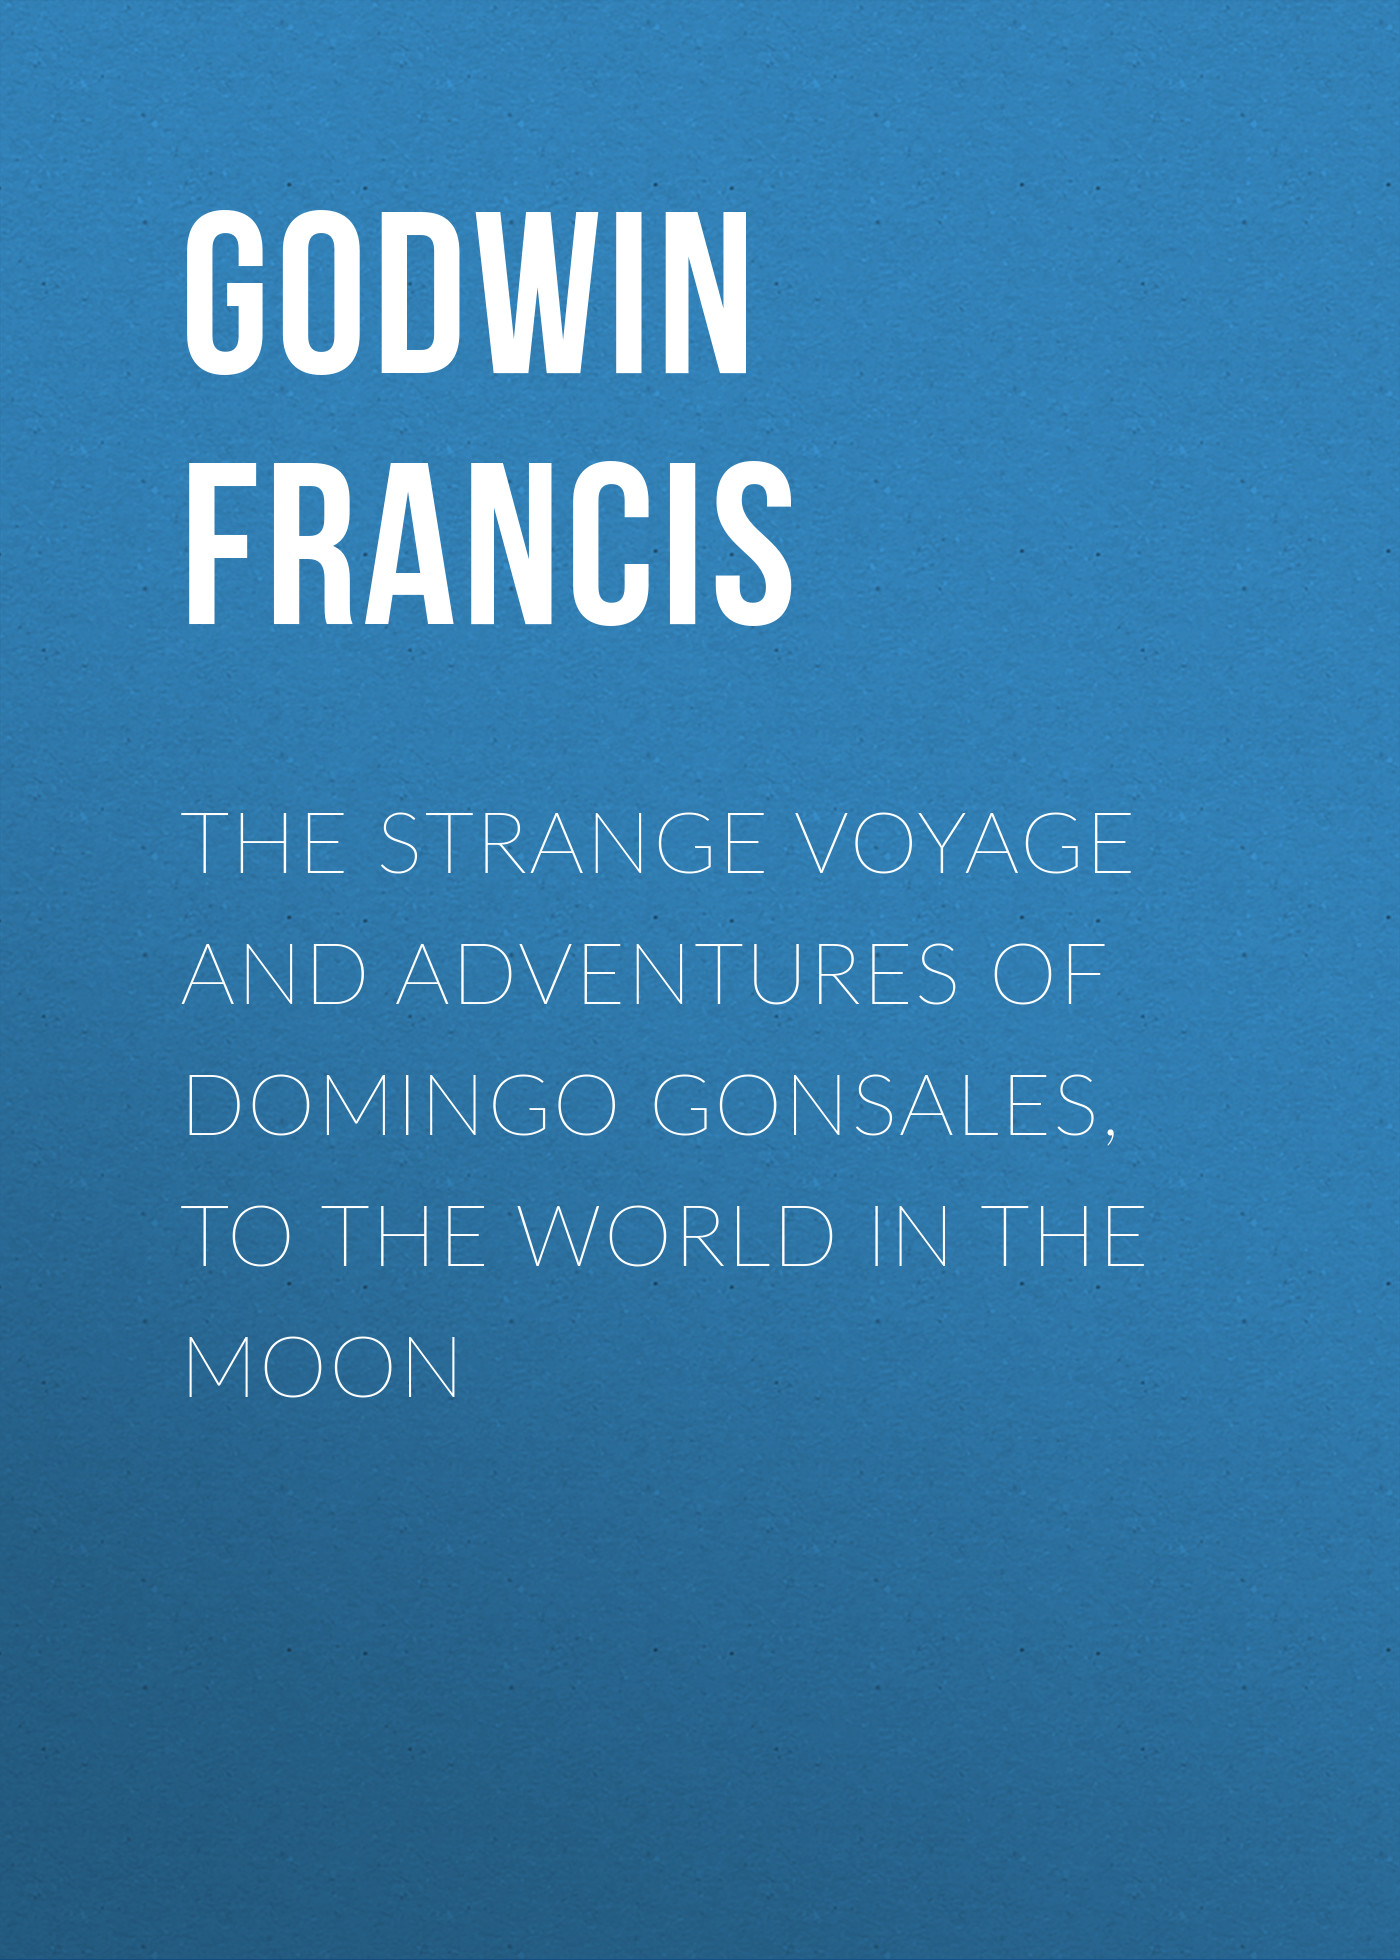 Godwin Francis The Strange Voyage and Adventures of Domingo Gonsales, to the World in the Moon